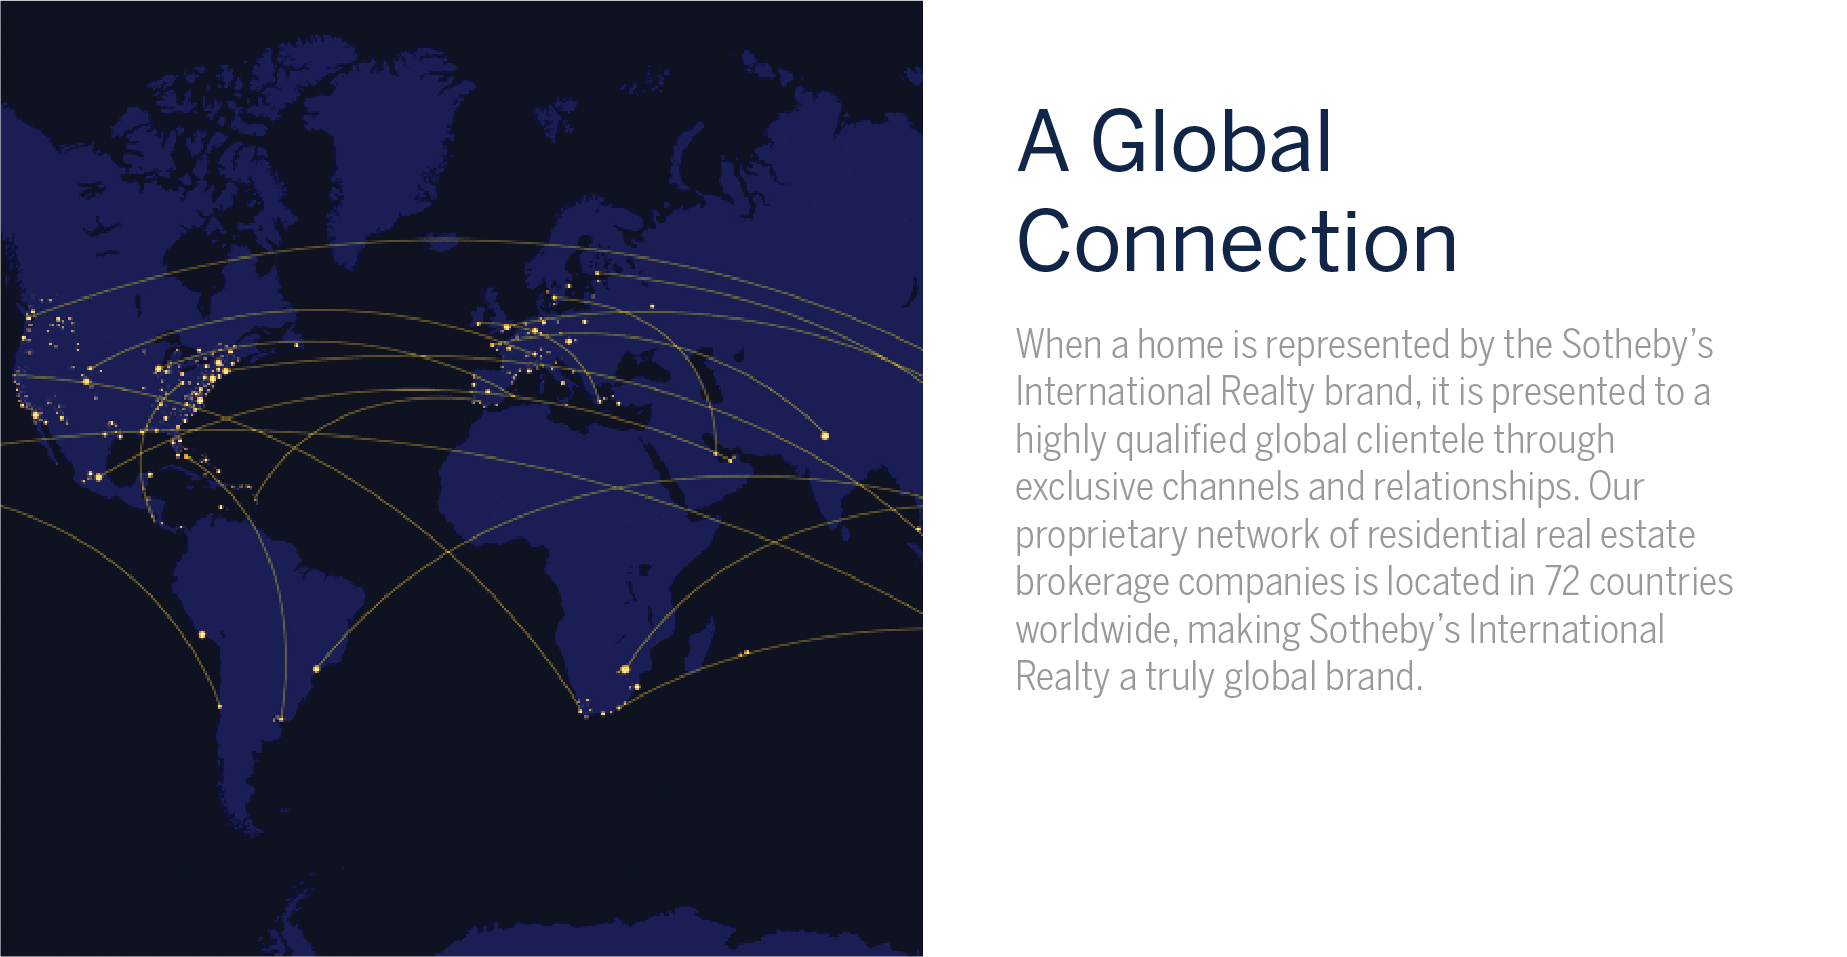 A Global Connection - When a home is represented by the Sotheby's International Realty brand, it is presented to a highly qualified global clientele through exclusive channels and relationships. Our proprietary network of residential real estate brokerage companies is located in 72 countries worldwide, making Sotheby's International Realty a truly global brand.